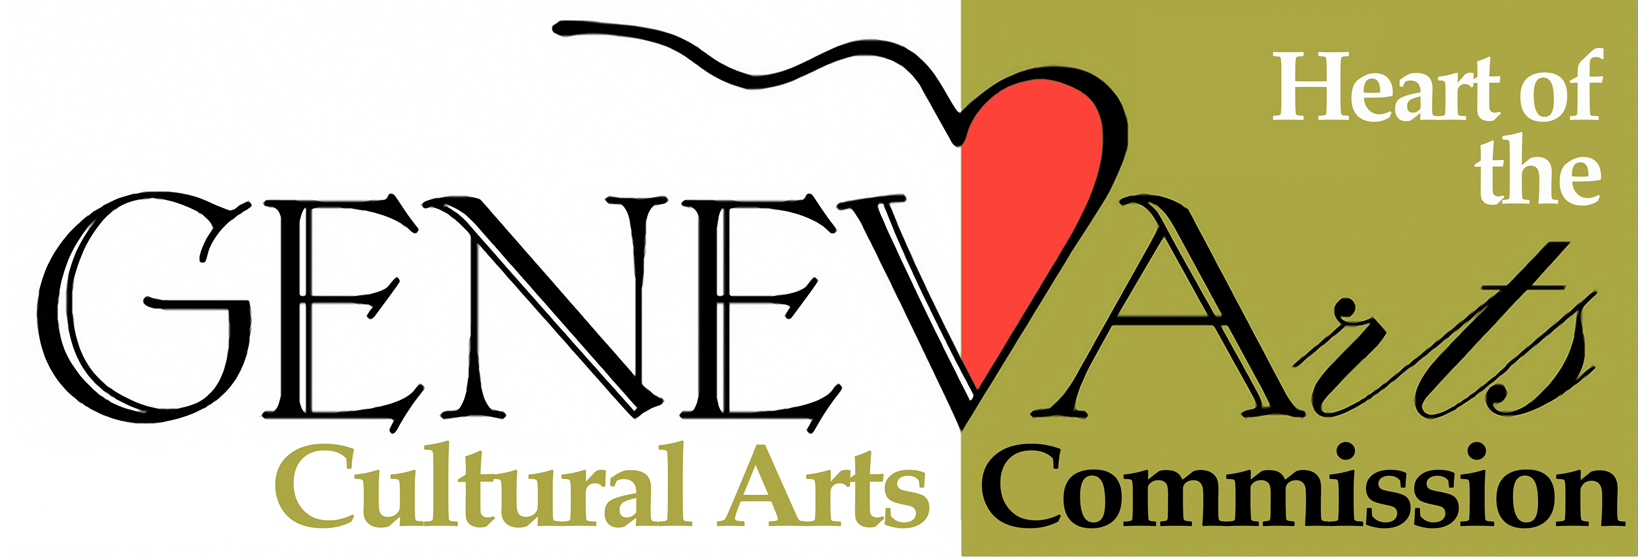 Cultural Arts Commission